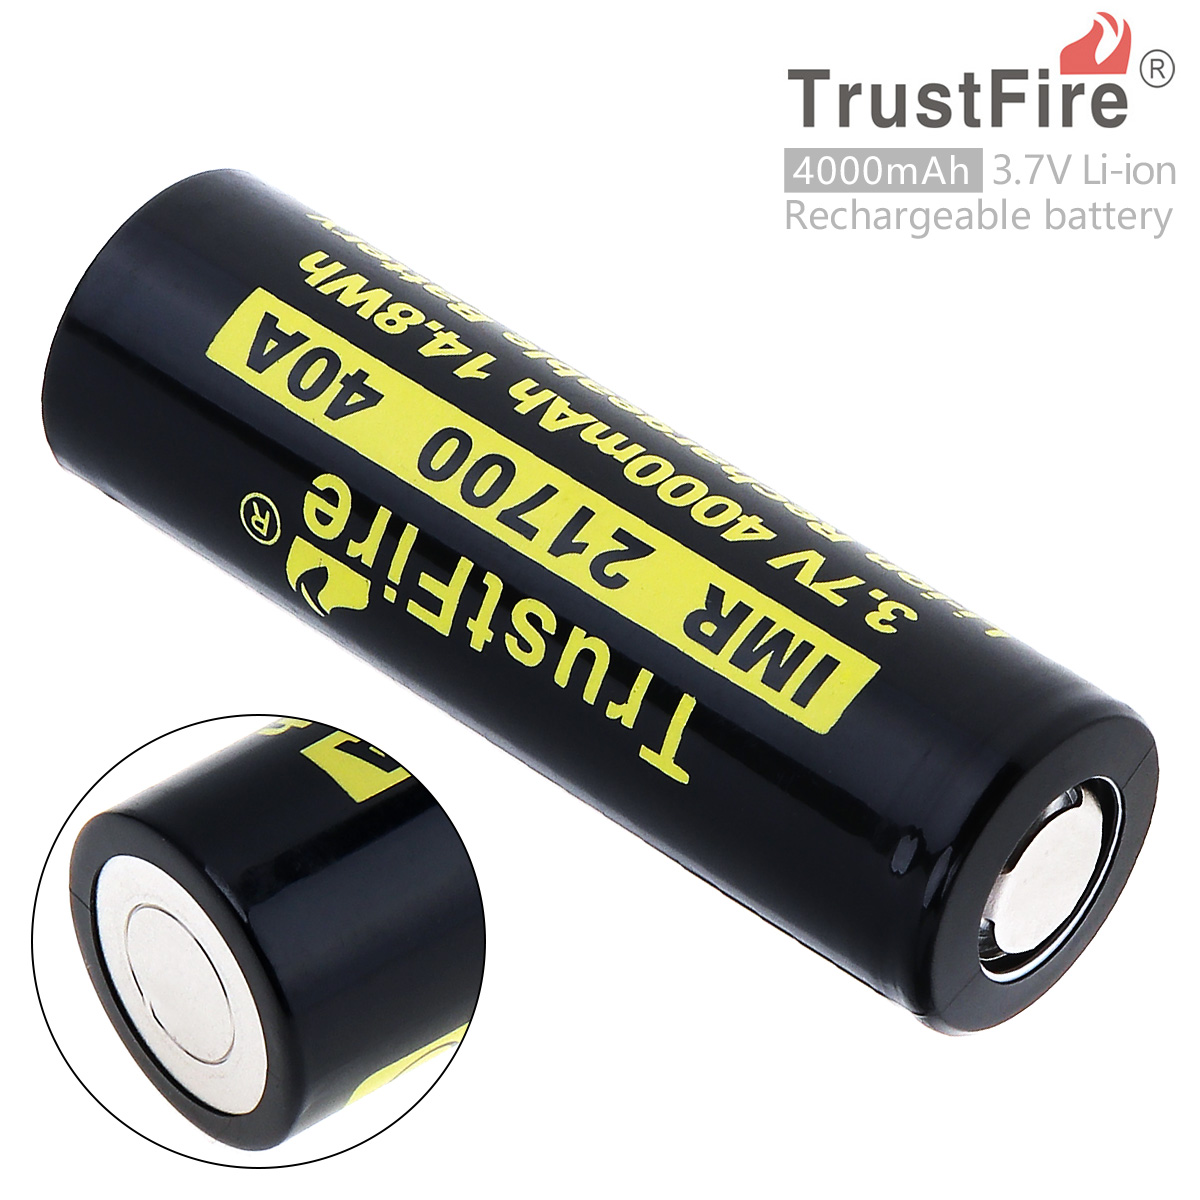 TrustFire 21700 3.7V 40A 4000mAh 14.8W Li-ion Rechargeable Battery with Protected PCB for Electric Tool/Headlamp / Bicycle Lamp